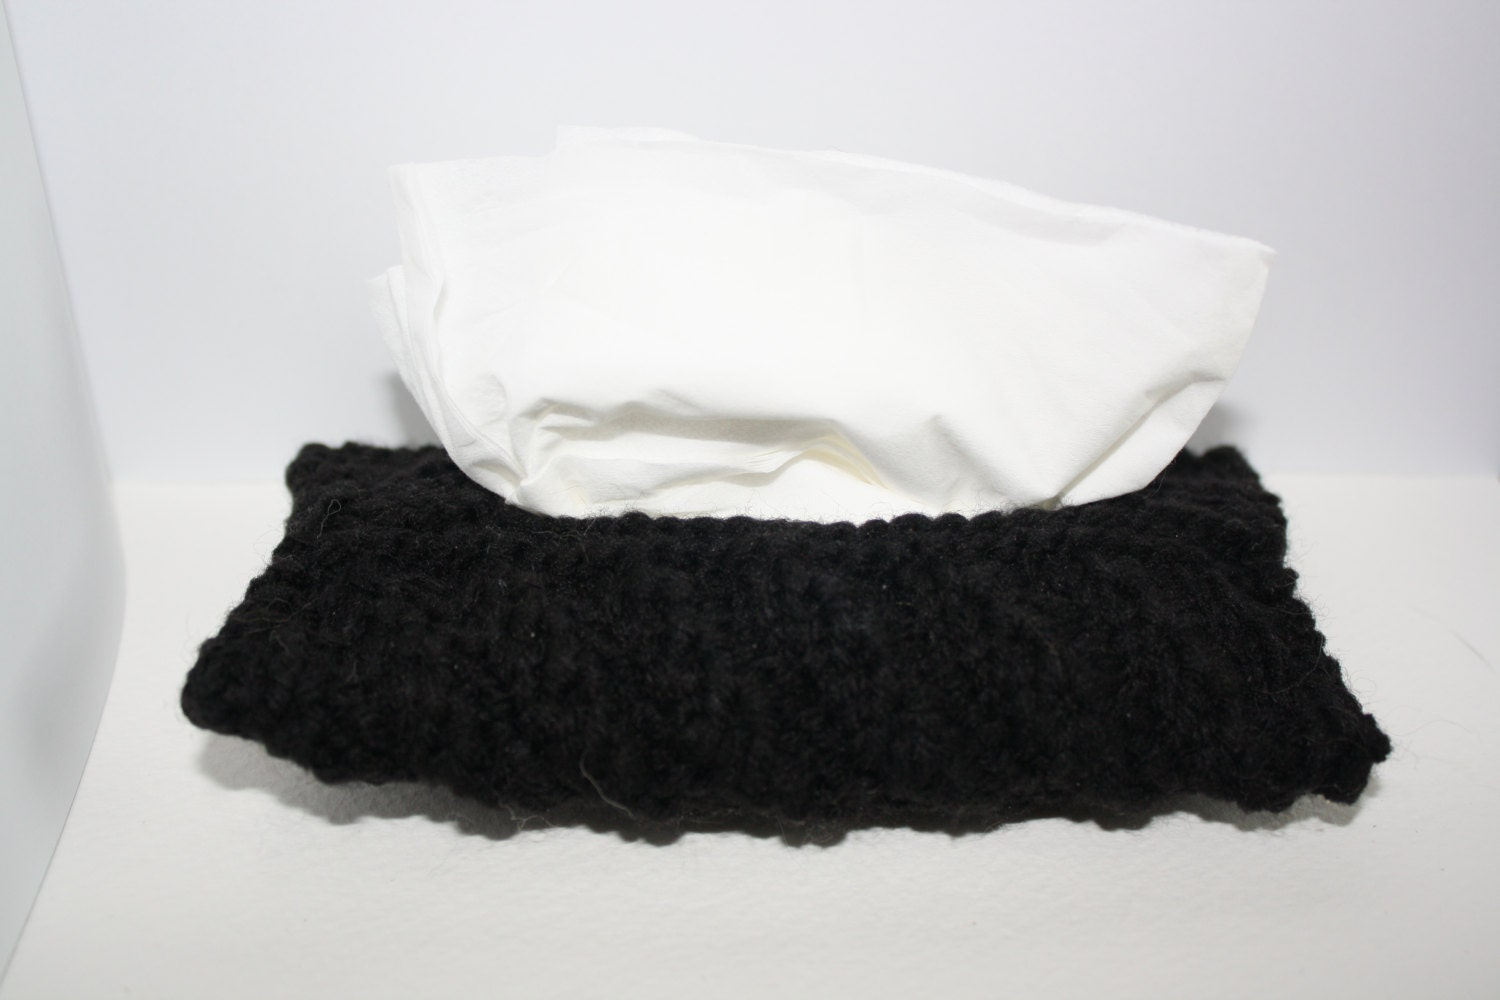 Knitting Pattern Tissue Holder : Travel tissue cozy / knitted tissue holder by Crystalcat1989